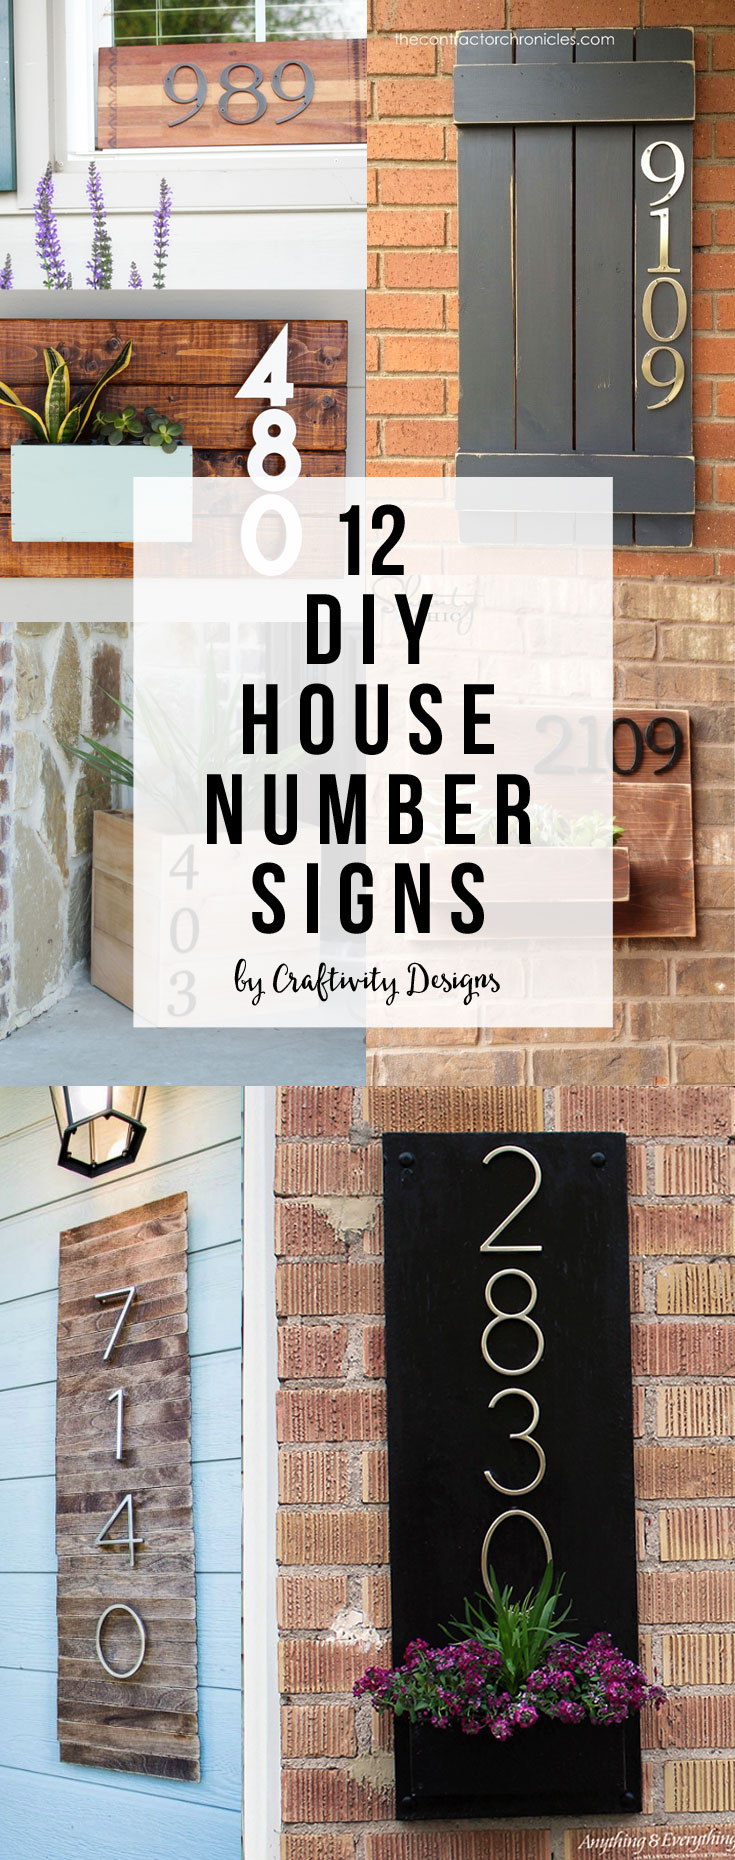 How To Make A Diy House Number Sign In Minutes